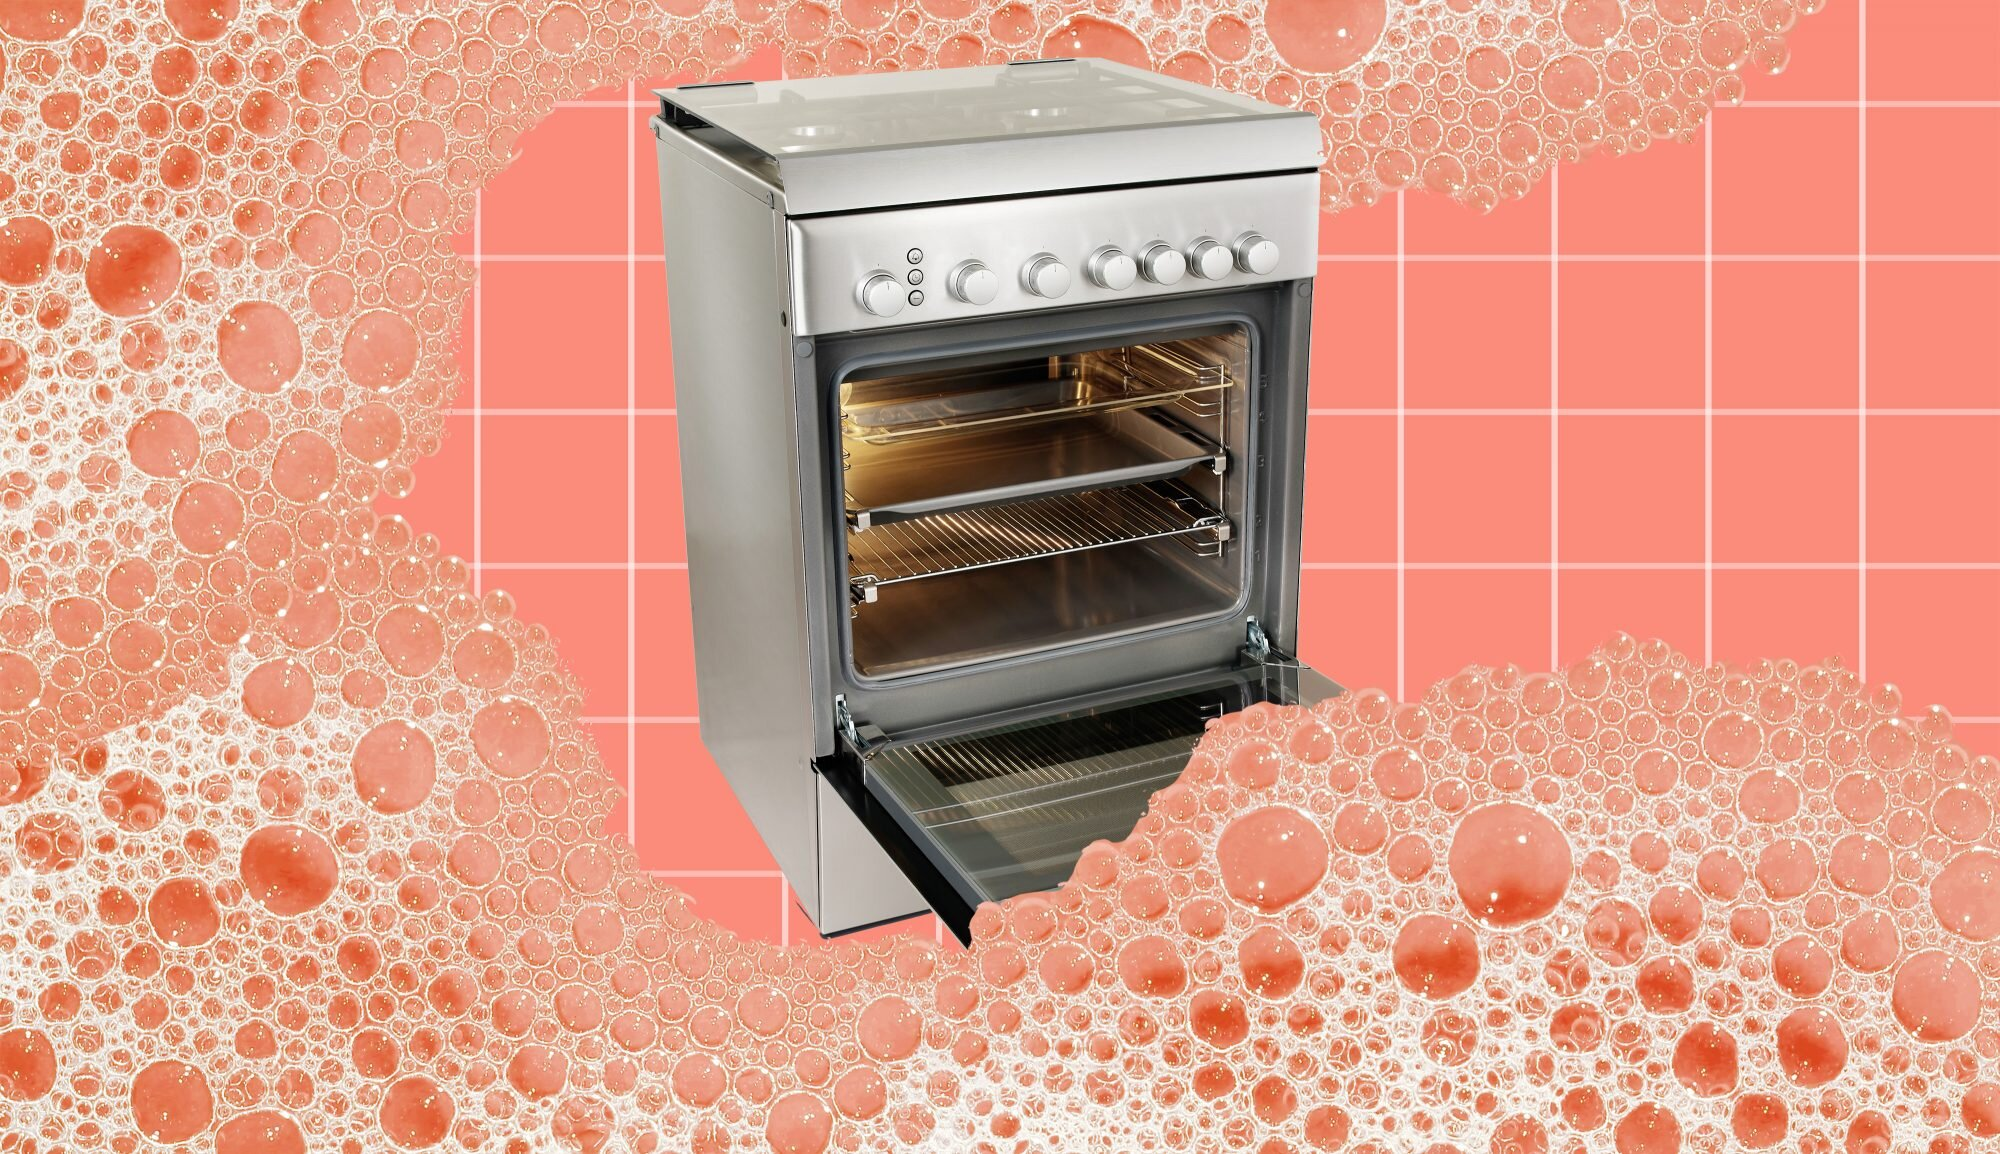 7 Oven Cleaning Hacks That Don Rsquo T Involve Any Harsh Chemicals Real Simple